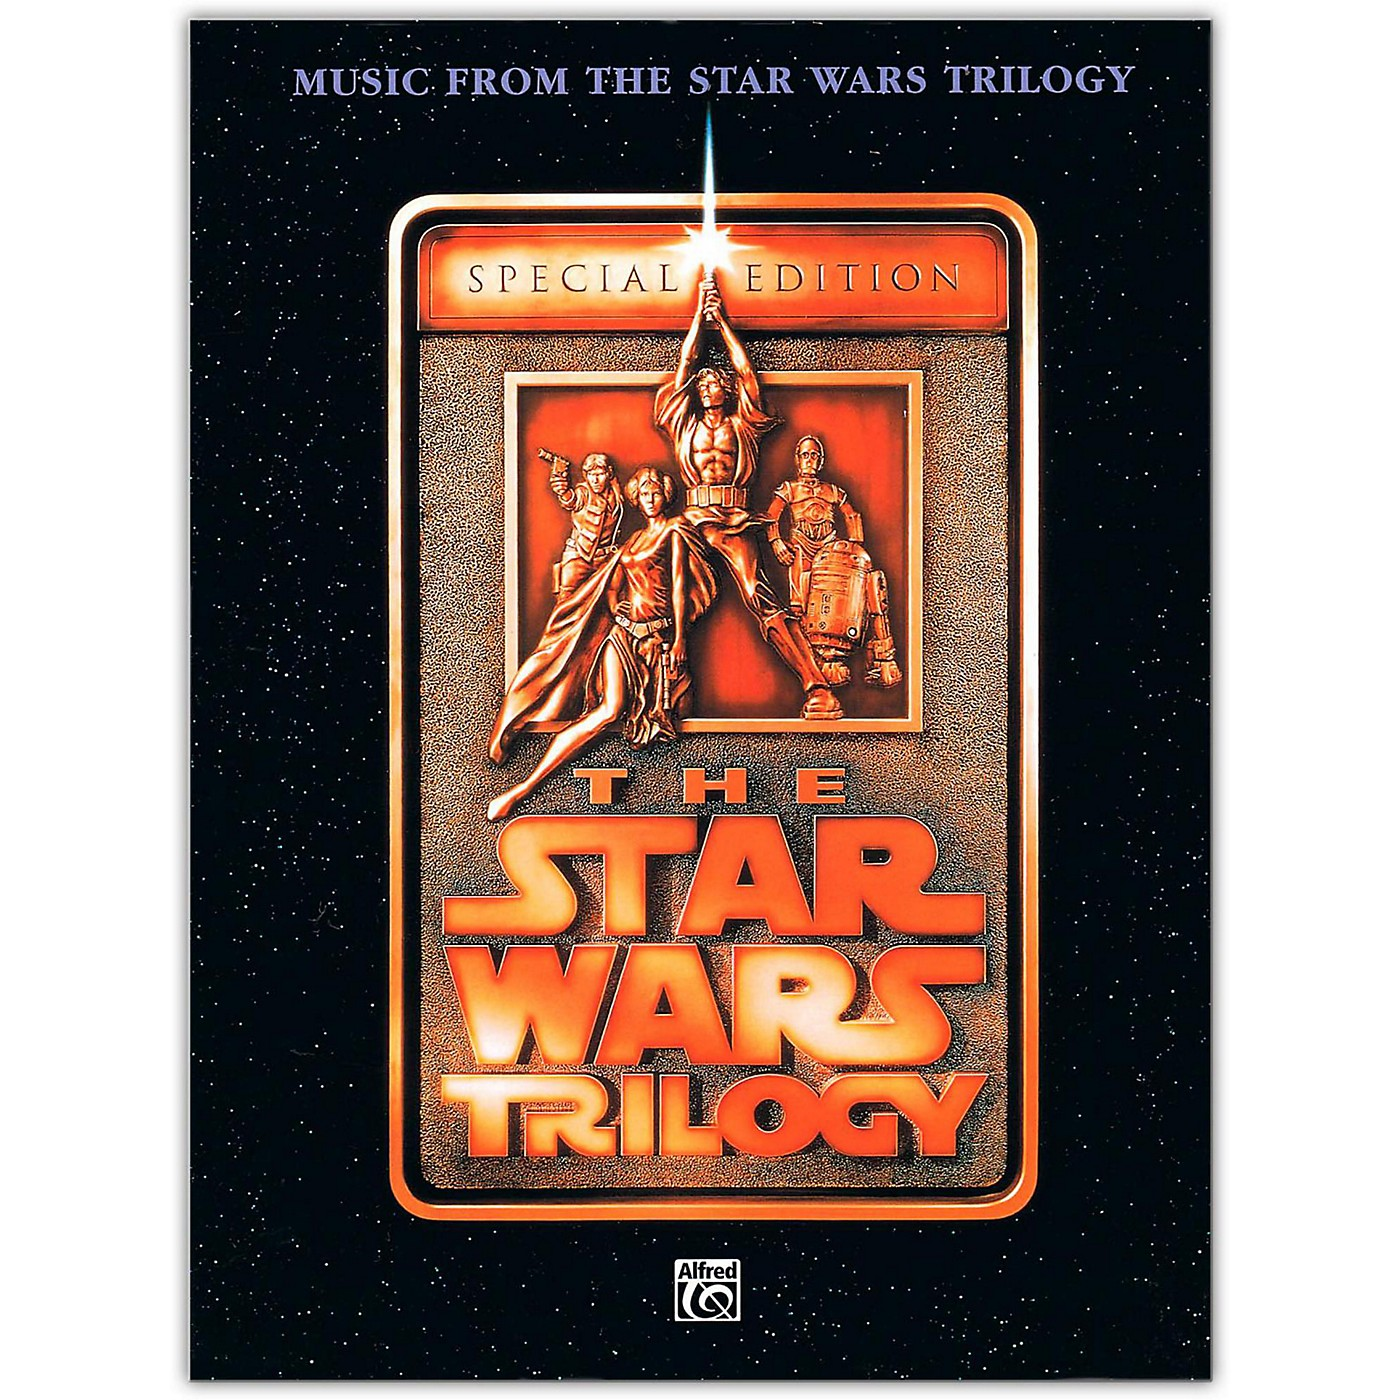 Alfred Music From The Star Wars Trilogy Special Edition for Piano/Vocal/Guitar thumbnail